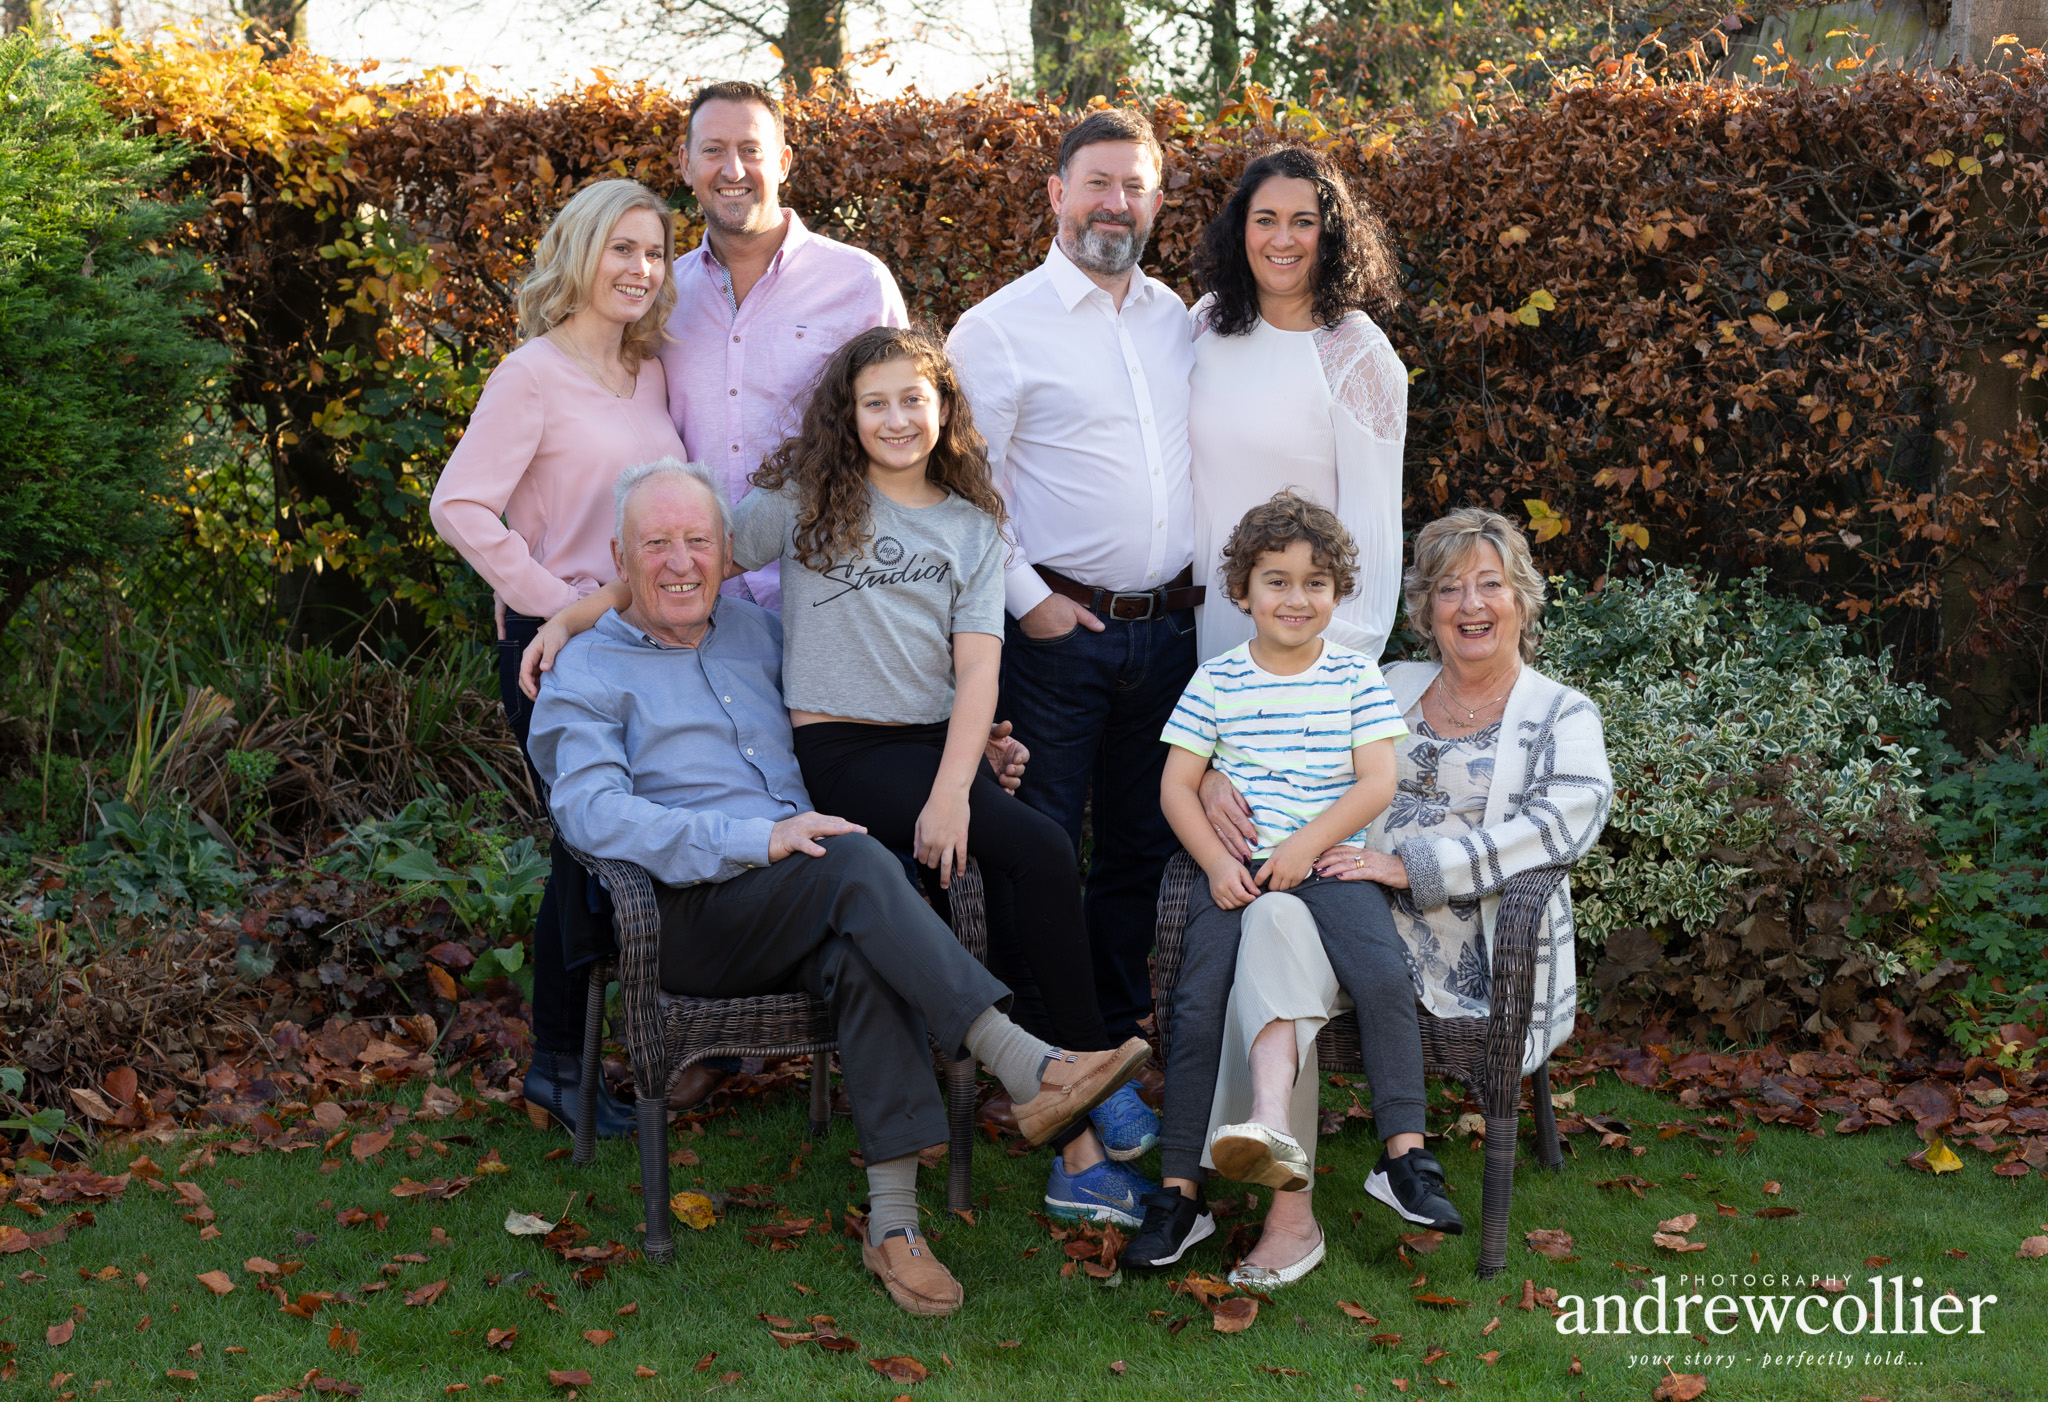 a family portrait of three generations taken in autumn sunlight in Leigh, Greater Manchester